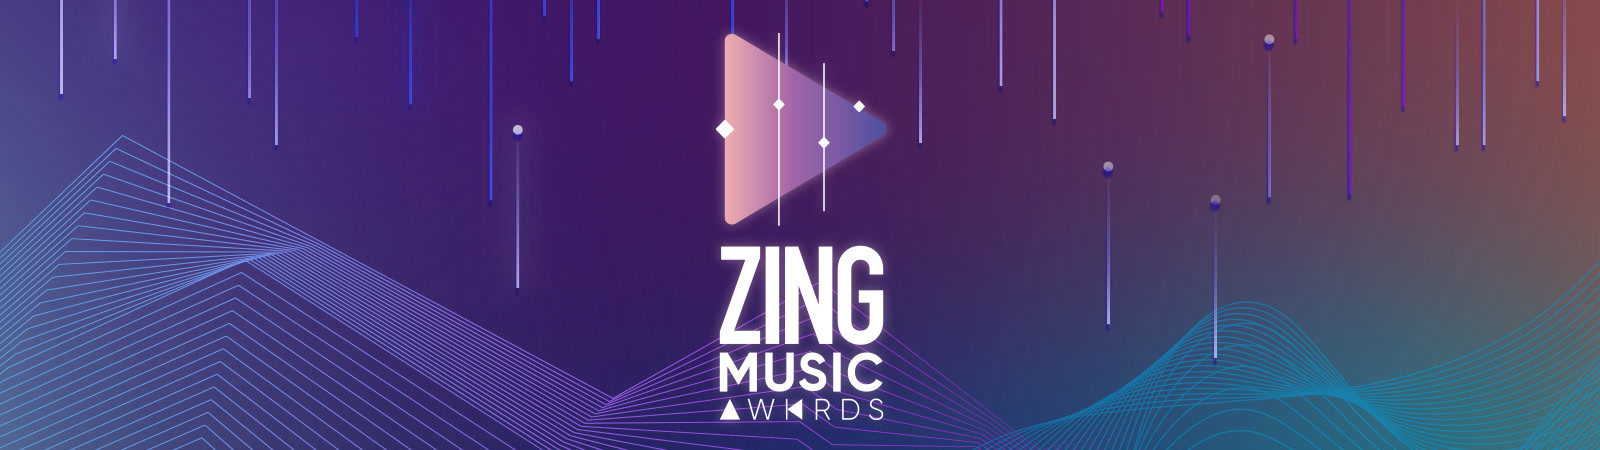 Zing Music Awards 2018